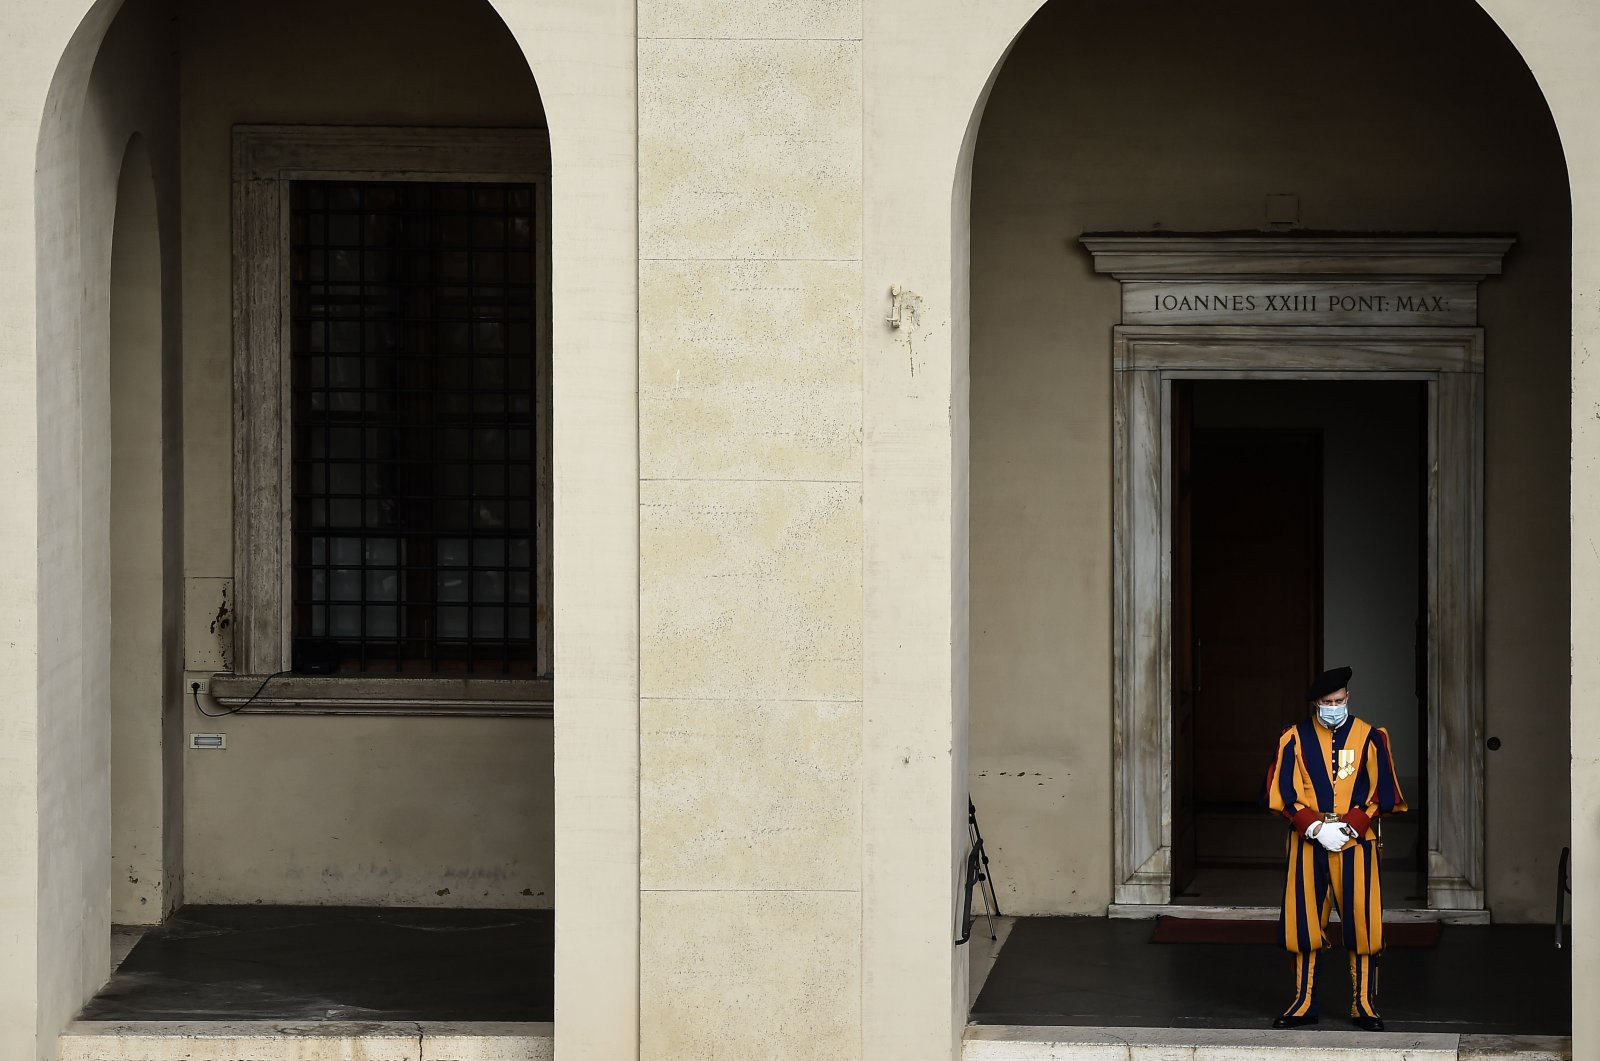 A Swiss Guard stands during a limited public audience by the pope at the San Damaso courtyard in The Vatican on Sept. 30, 2020. (AFP Photo)